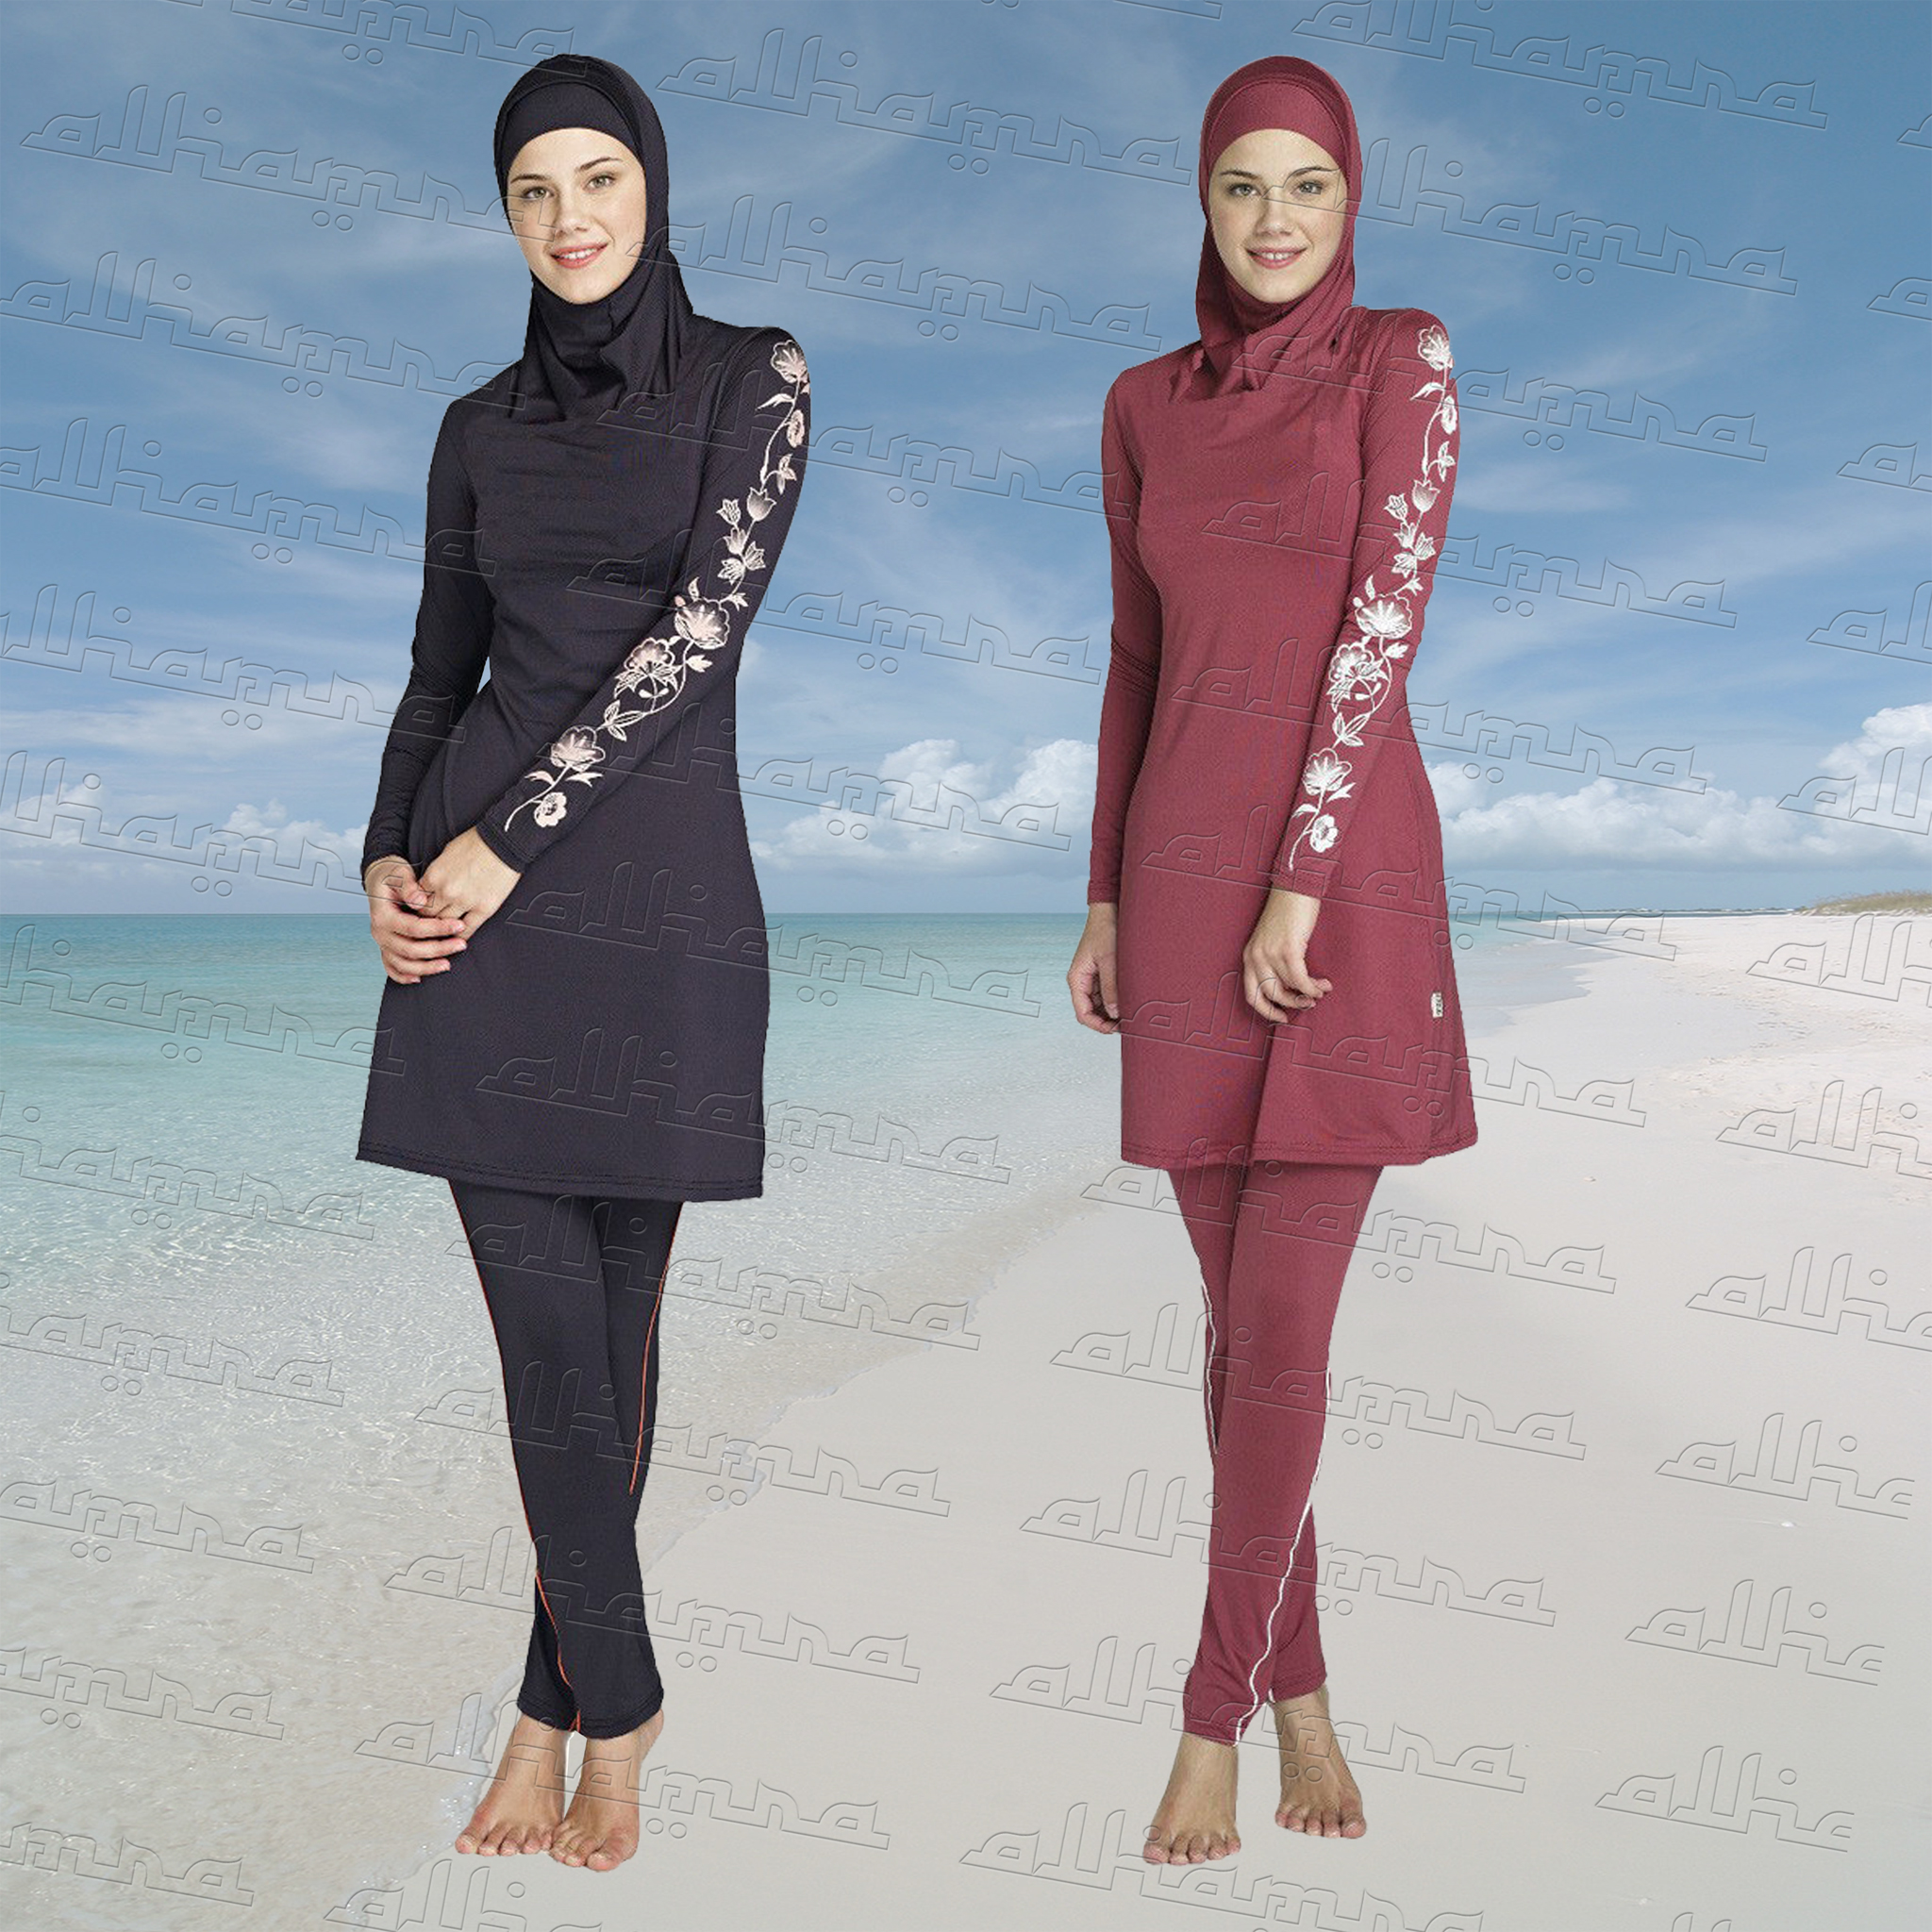 af386a9f36 AlHamra Lale Full Cover Modest burkini Swimwear sportswear - Alhamra ...